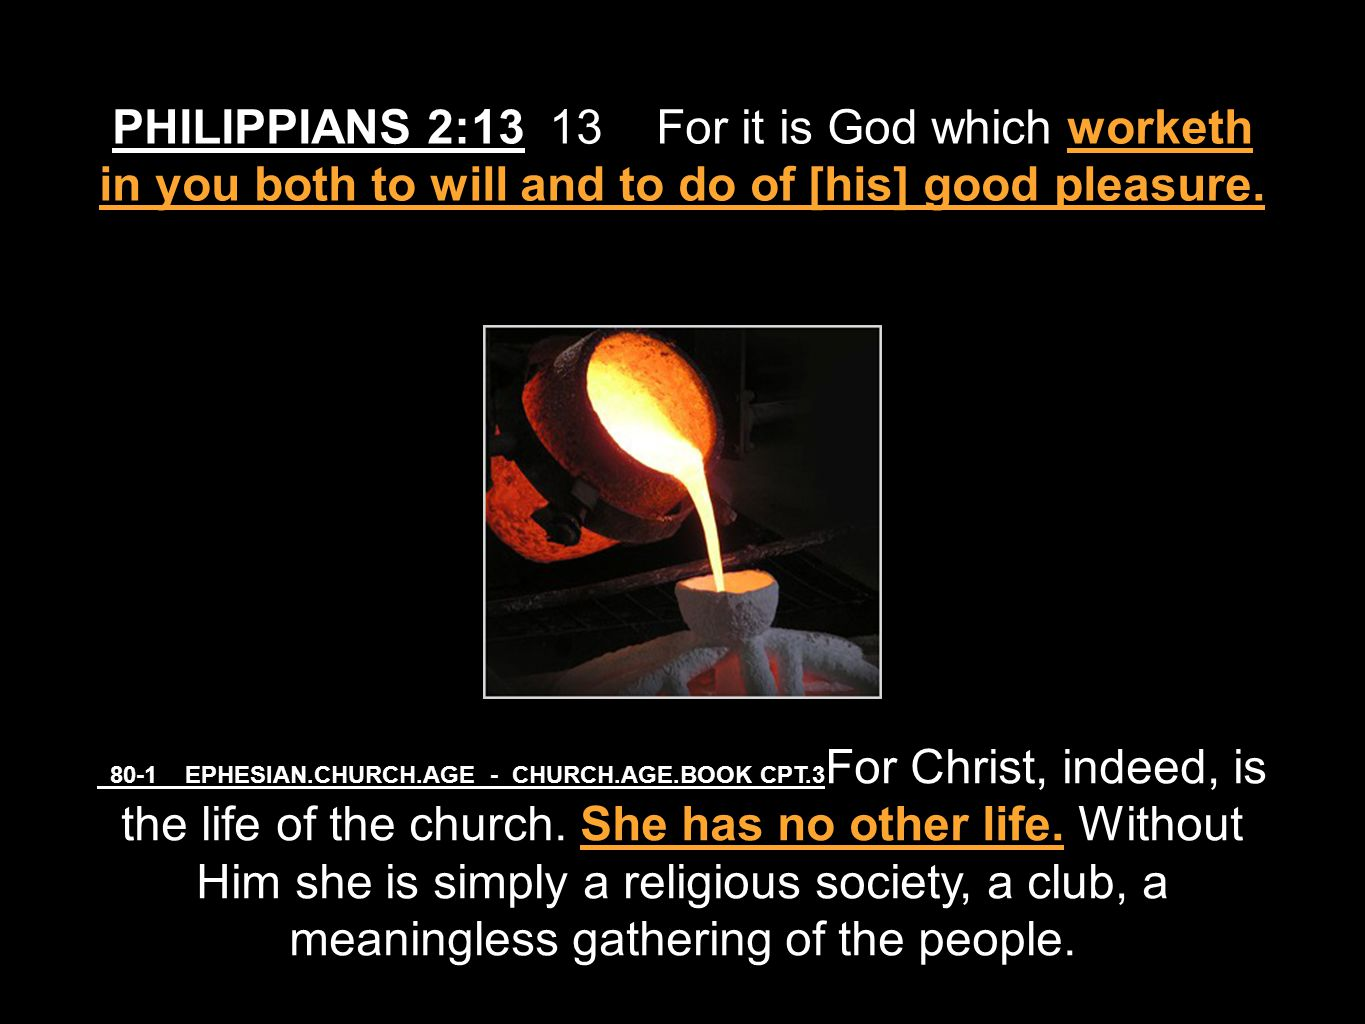 PHILIPPIANS 2:13 13 For it is God which worketh in you both to will and to do of [his] good pleasure.